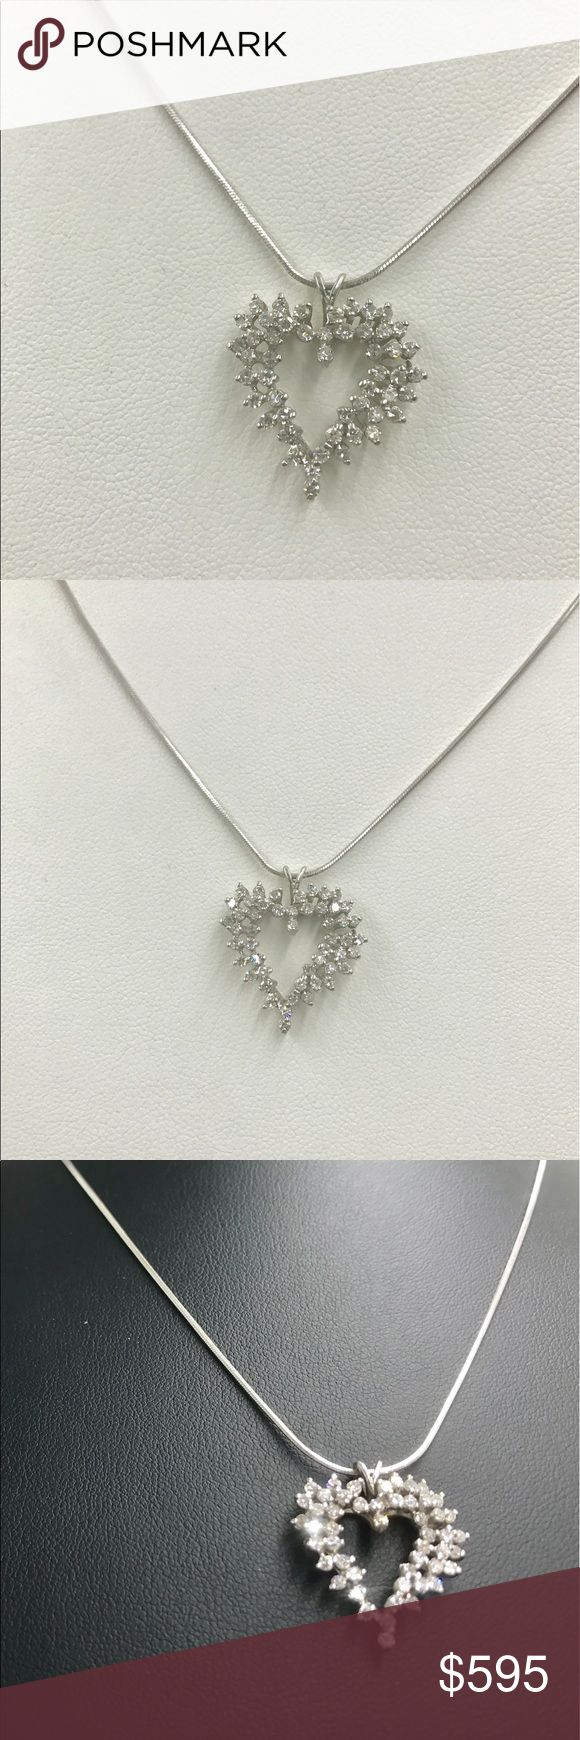 Beautiful heart diamond pendant, over a carat. Beautiful with lots of sparkle, this heart pendant makes a perfect gift, or just treat yourself! This can be worn every day, whether in jeans or a cocktail dress. Approximately a carat and a half of SI clarity G-H color diamonds. Jewelry Necklaces